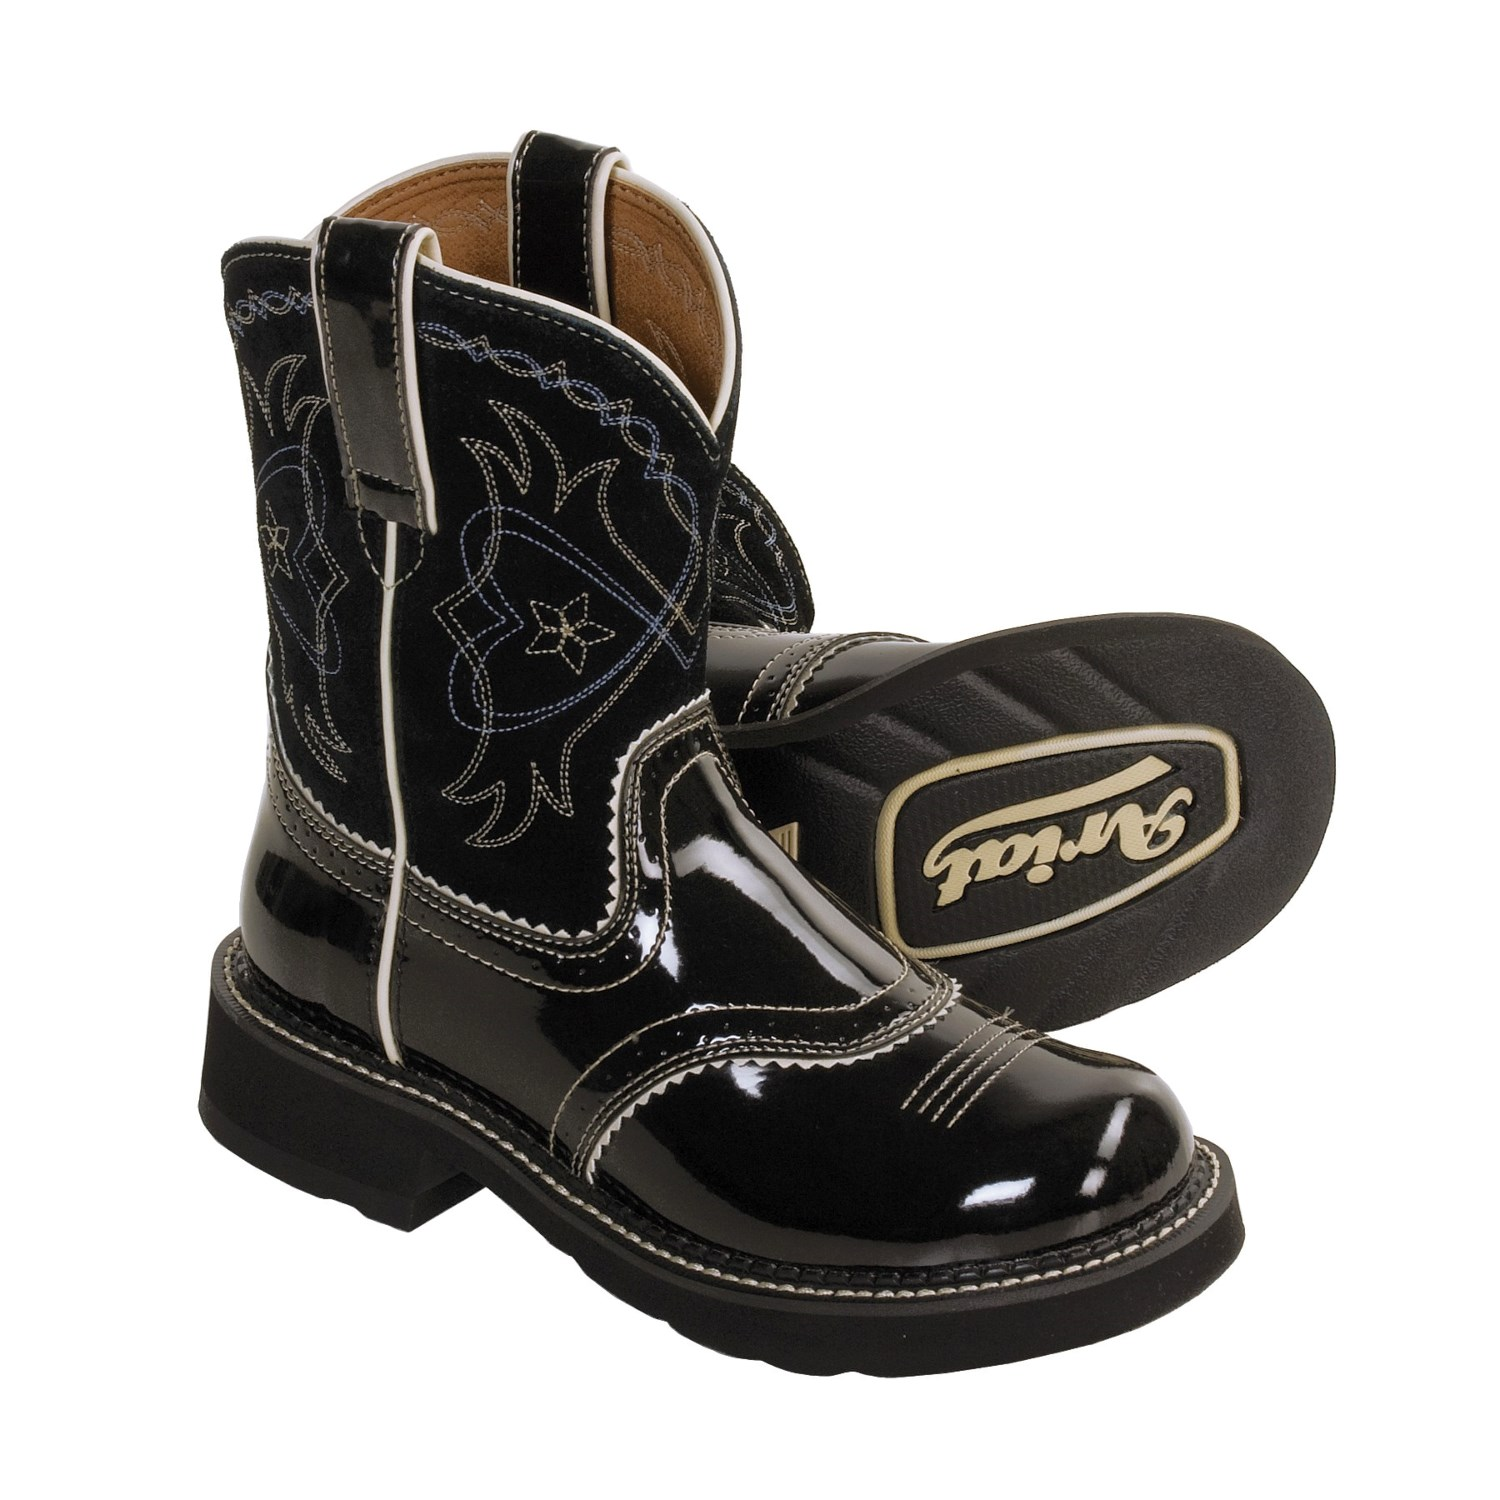 Ariat Fatbaby Boots Clearance - Cr Boot